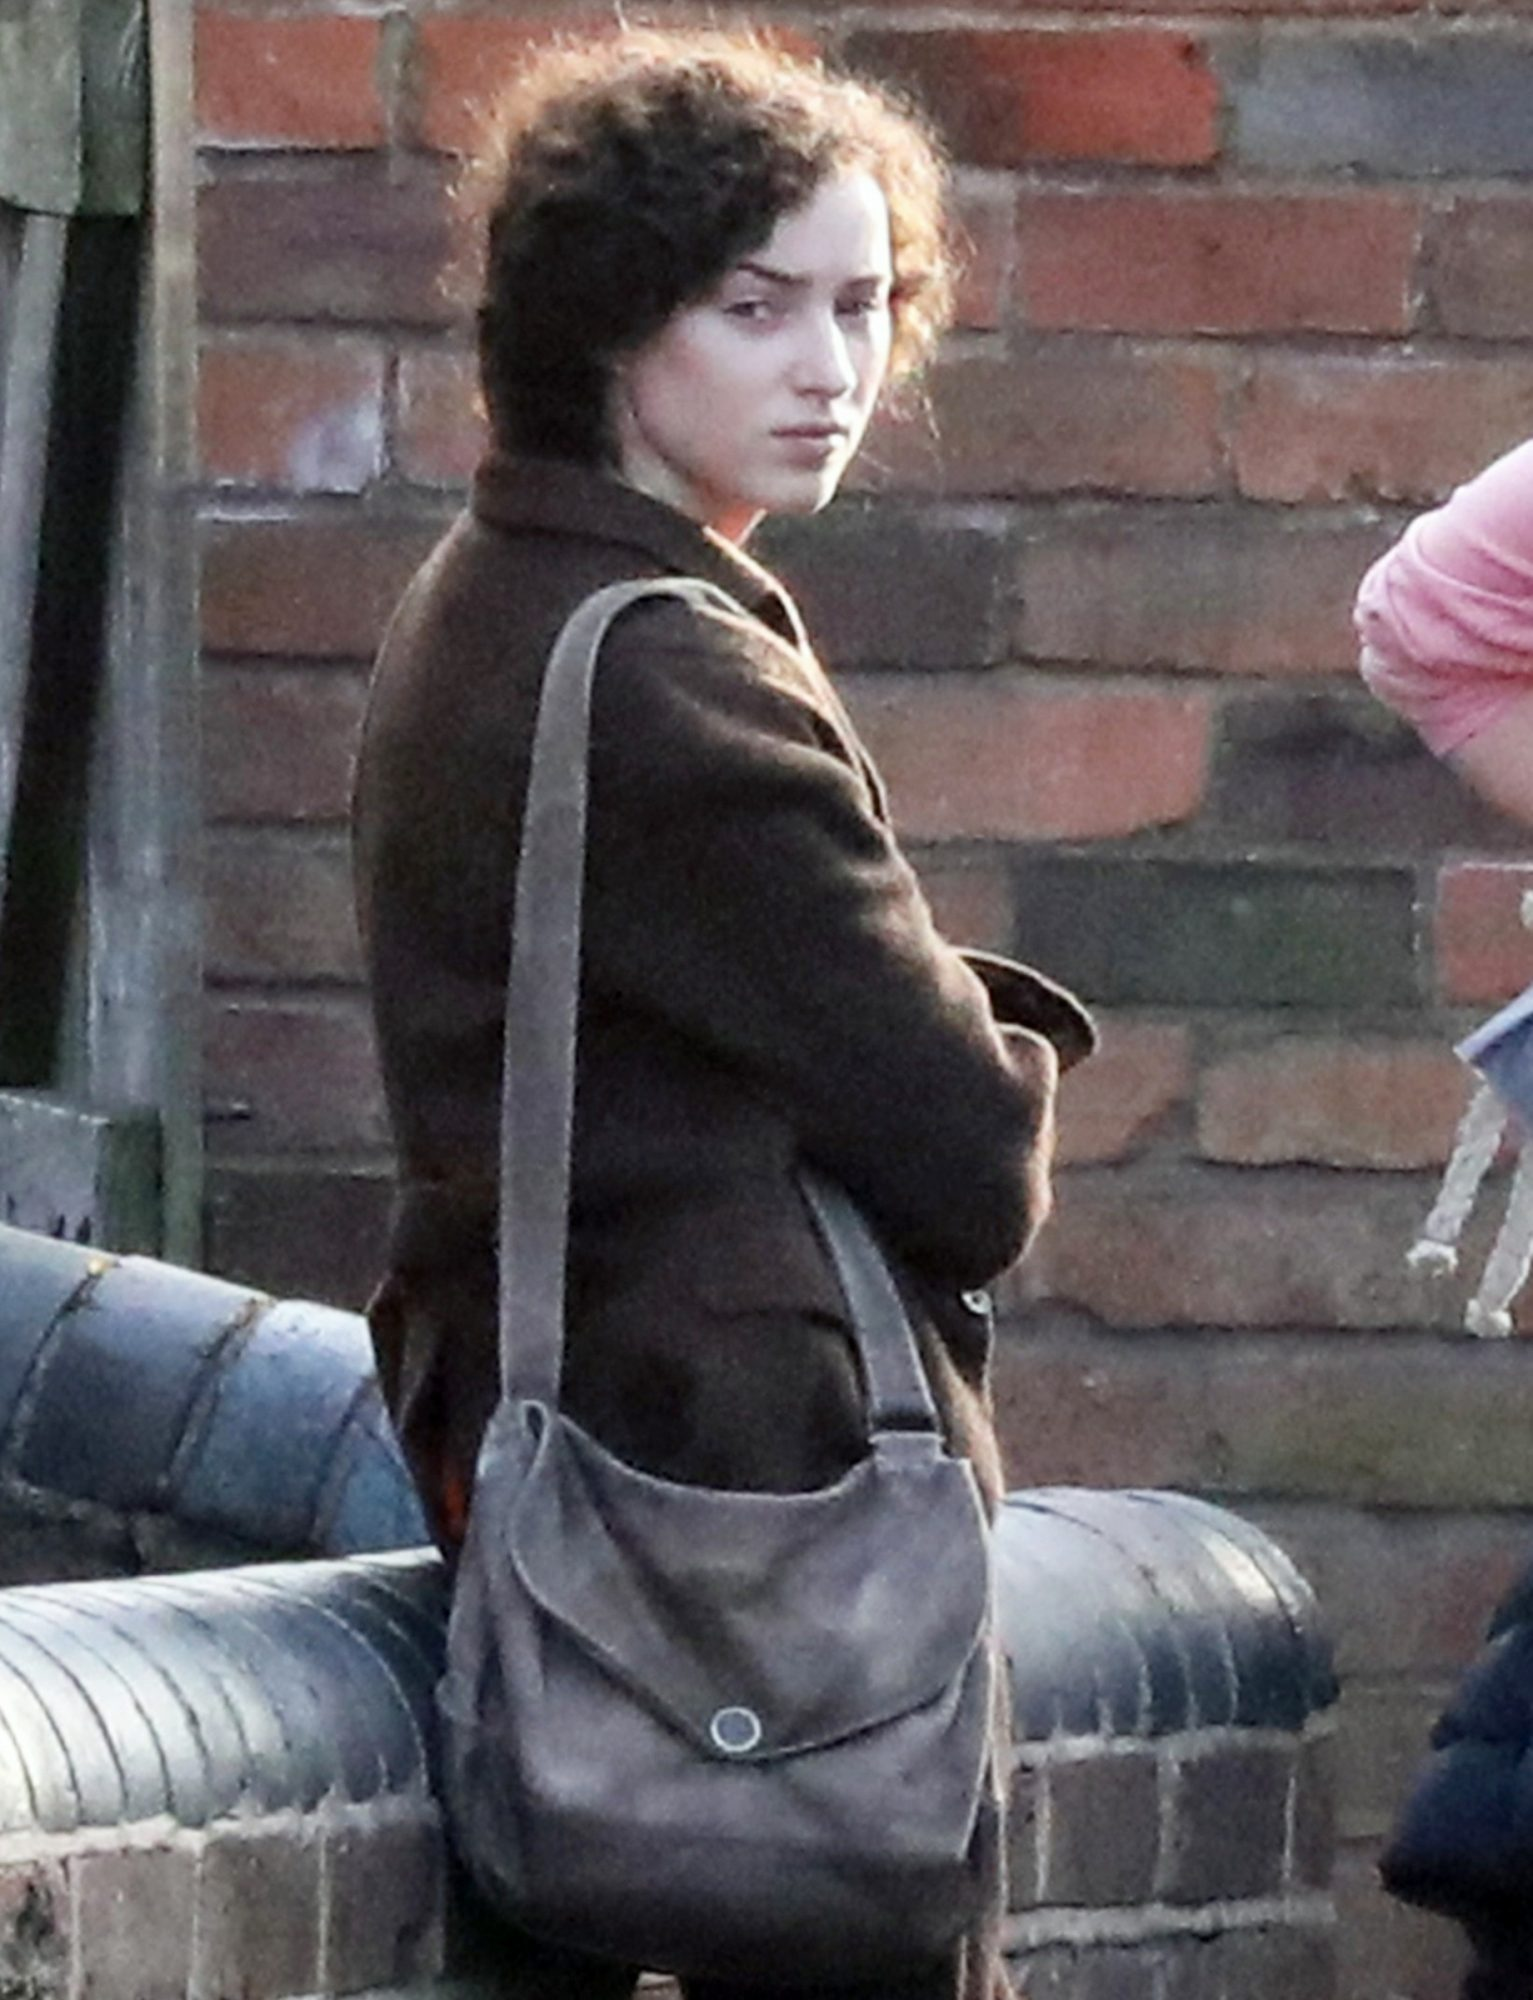 Phoebe Dynevor, Mathew Goode And Darci Shaw Seen Filming Scenes At The Black Country Museum In Birmingham